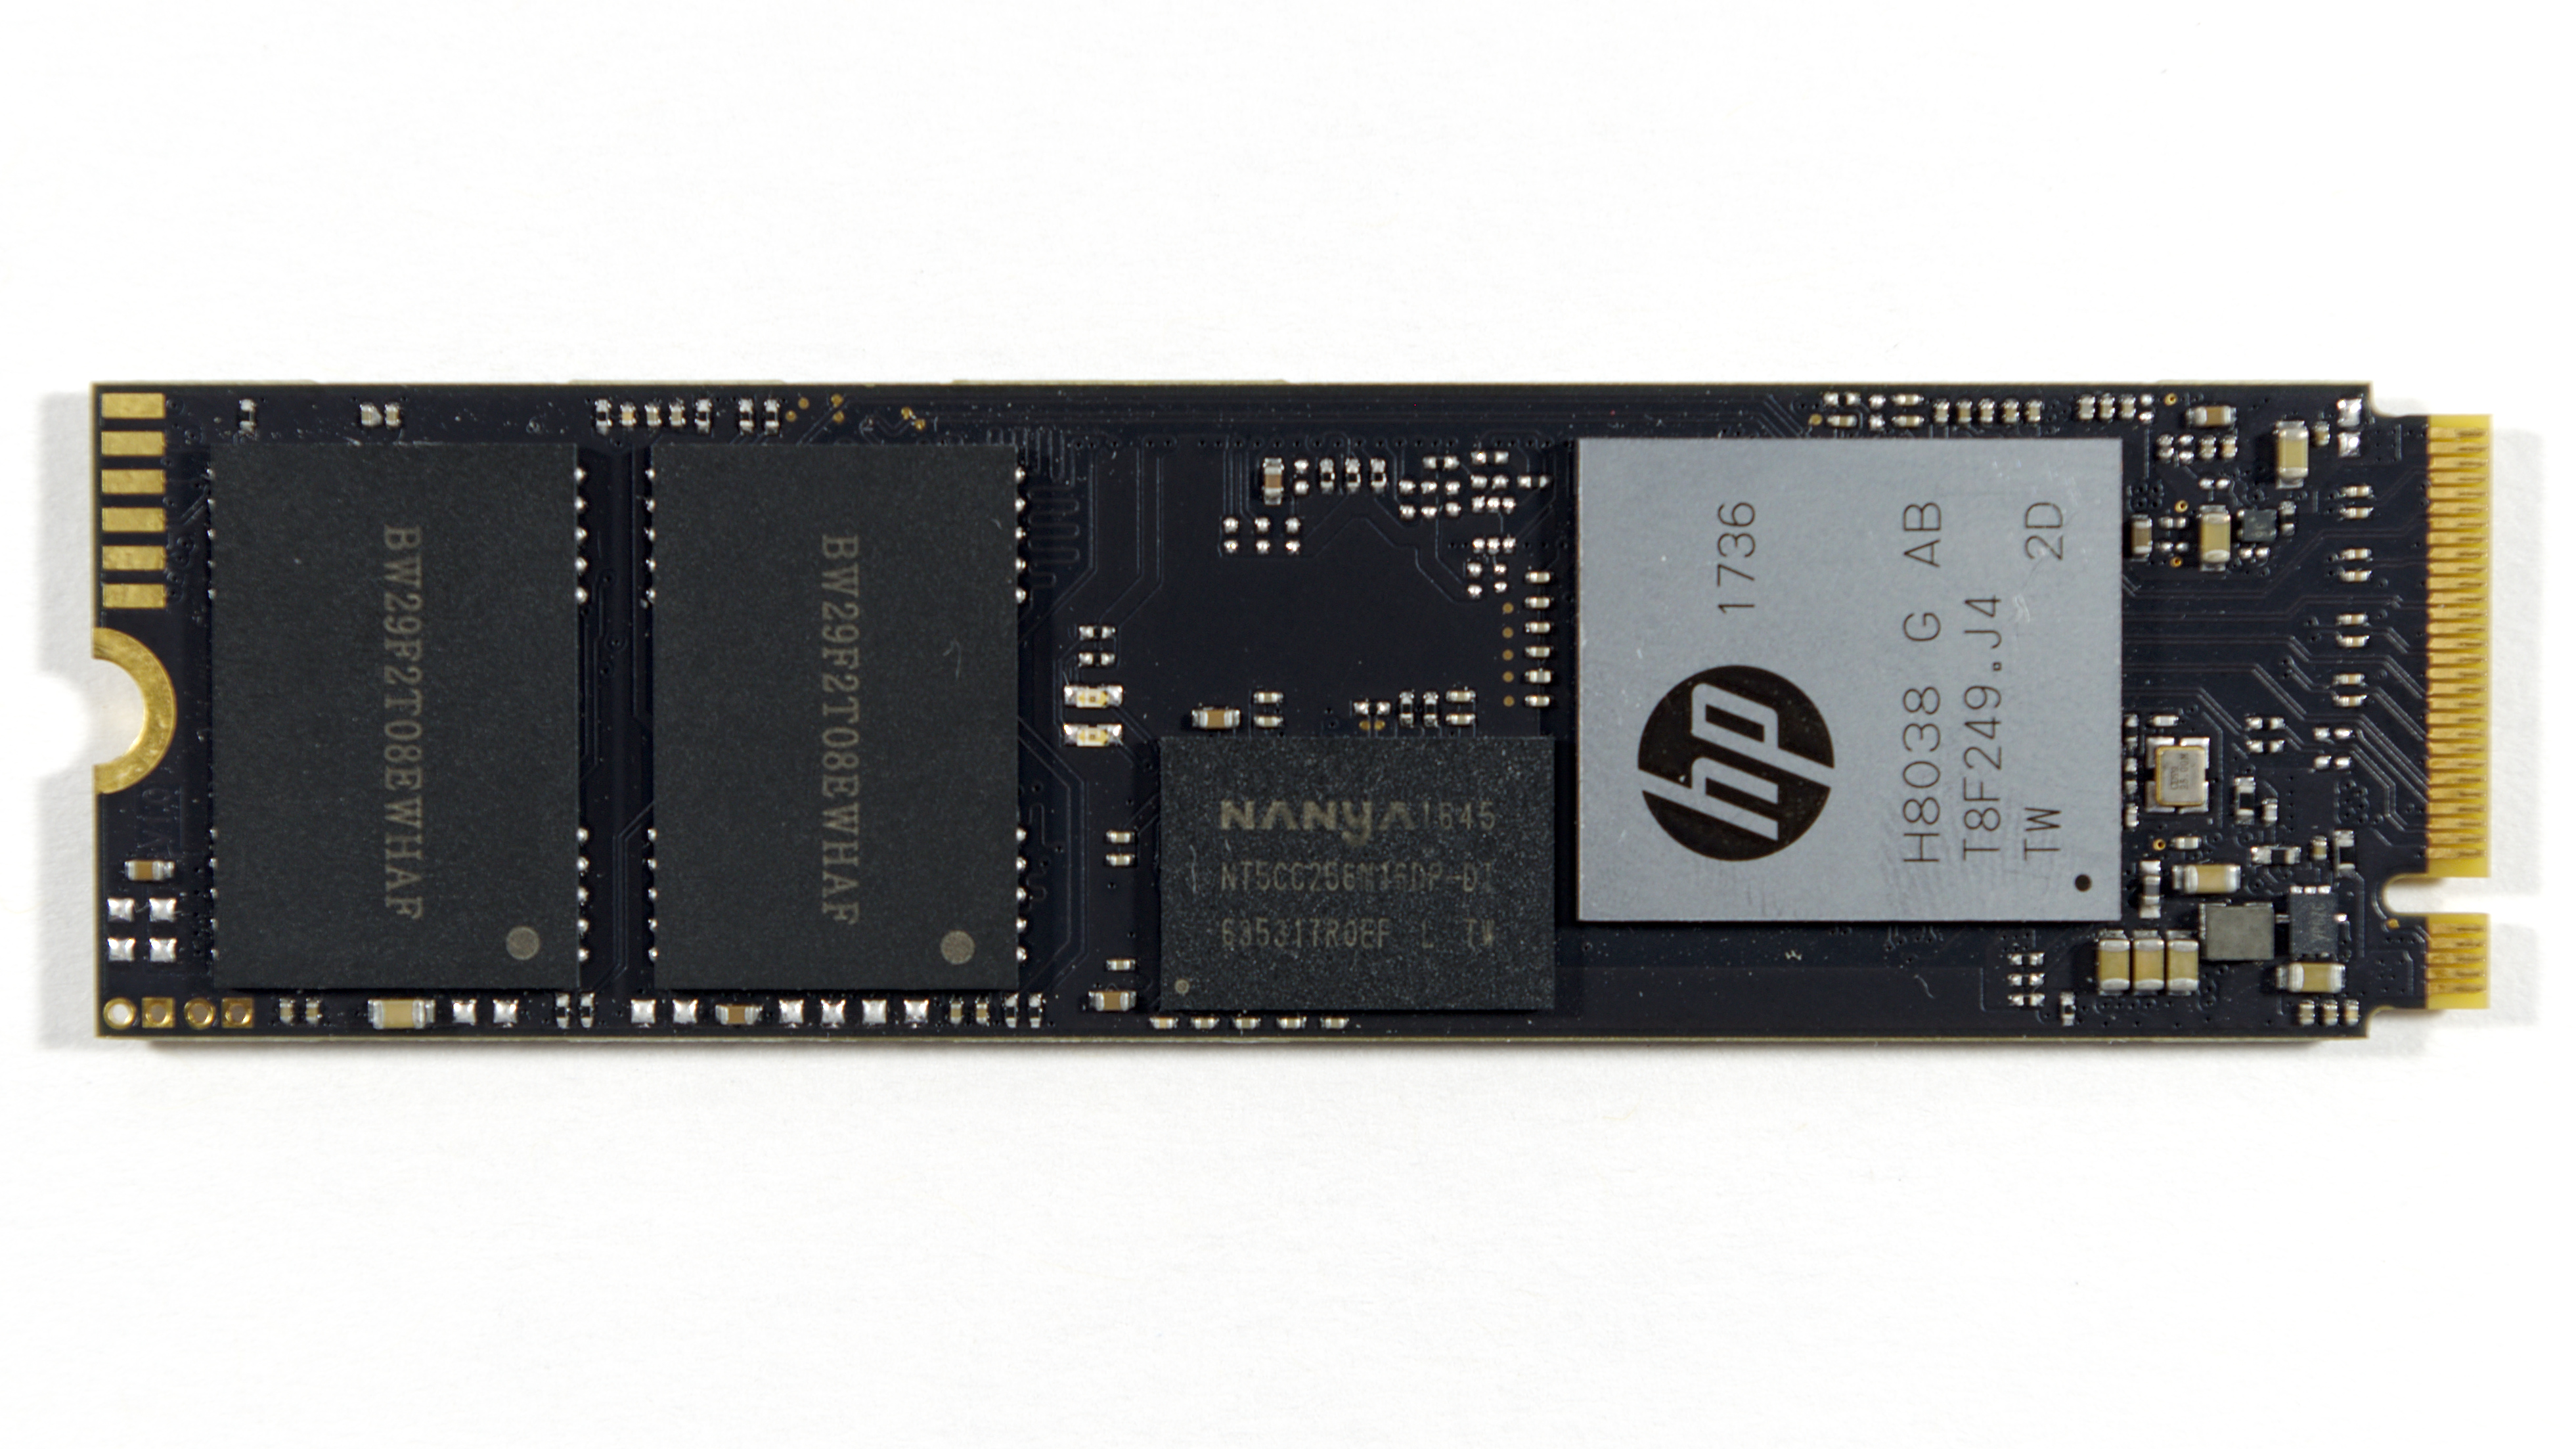 The HP EX920 M 2 SSD Review: Finding the Mainstream Sweet Spot